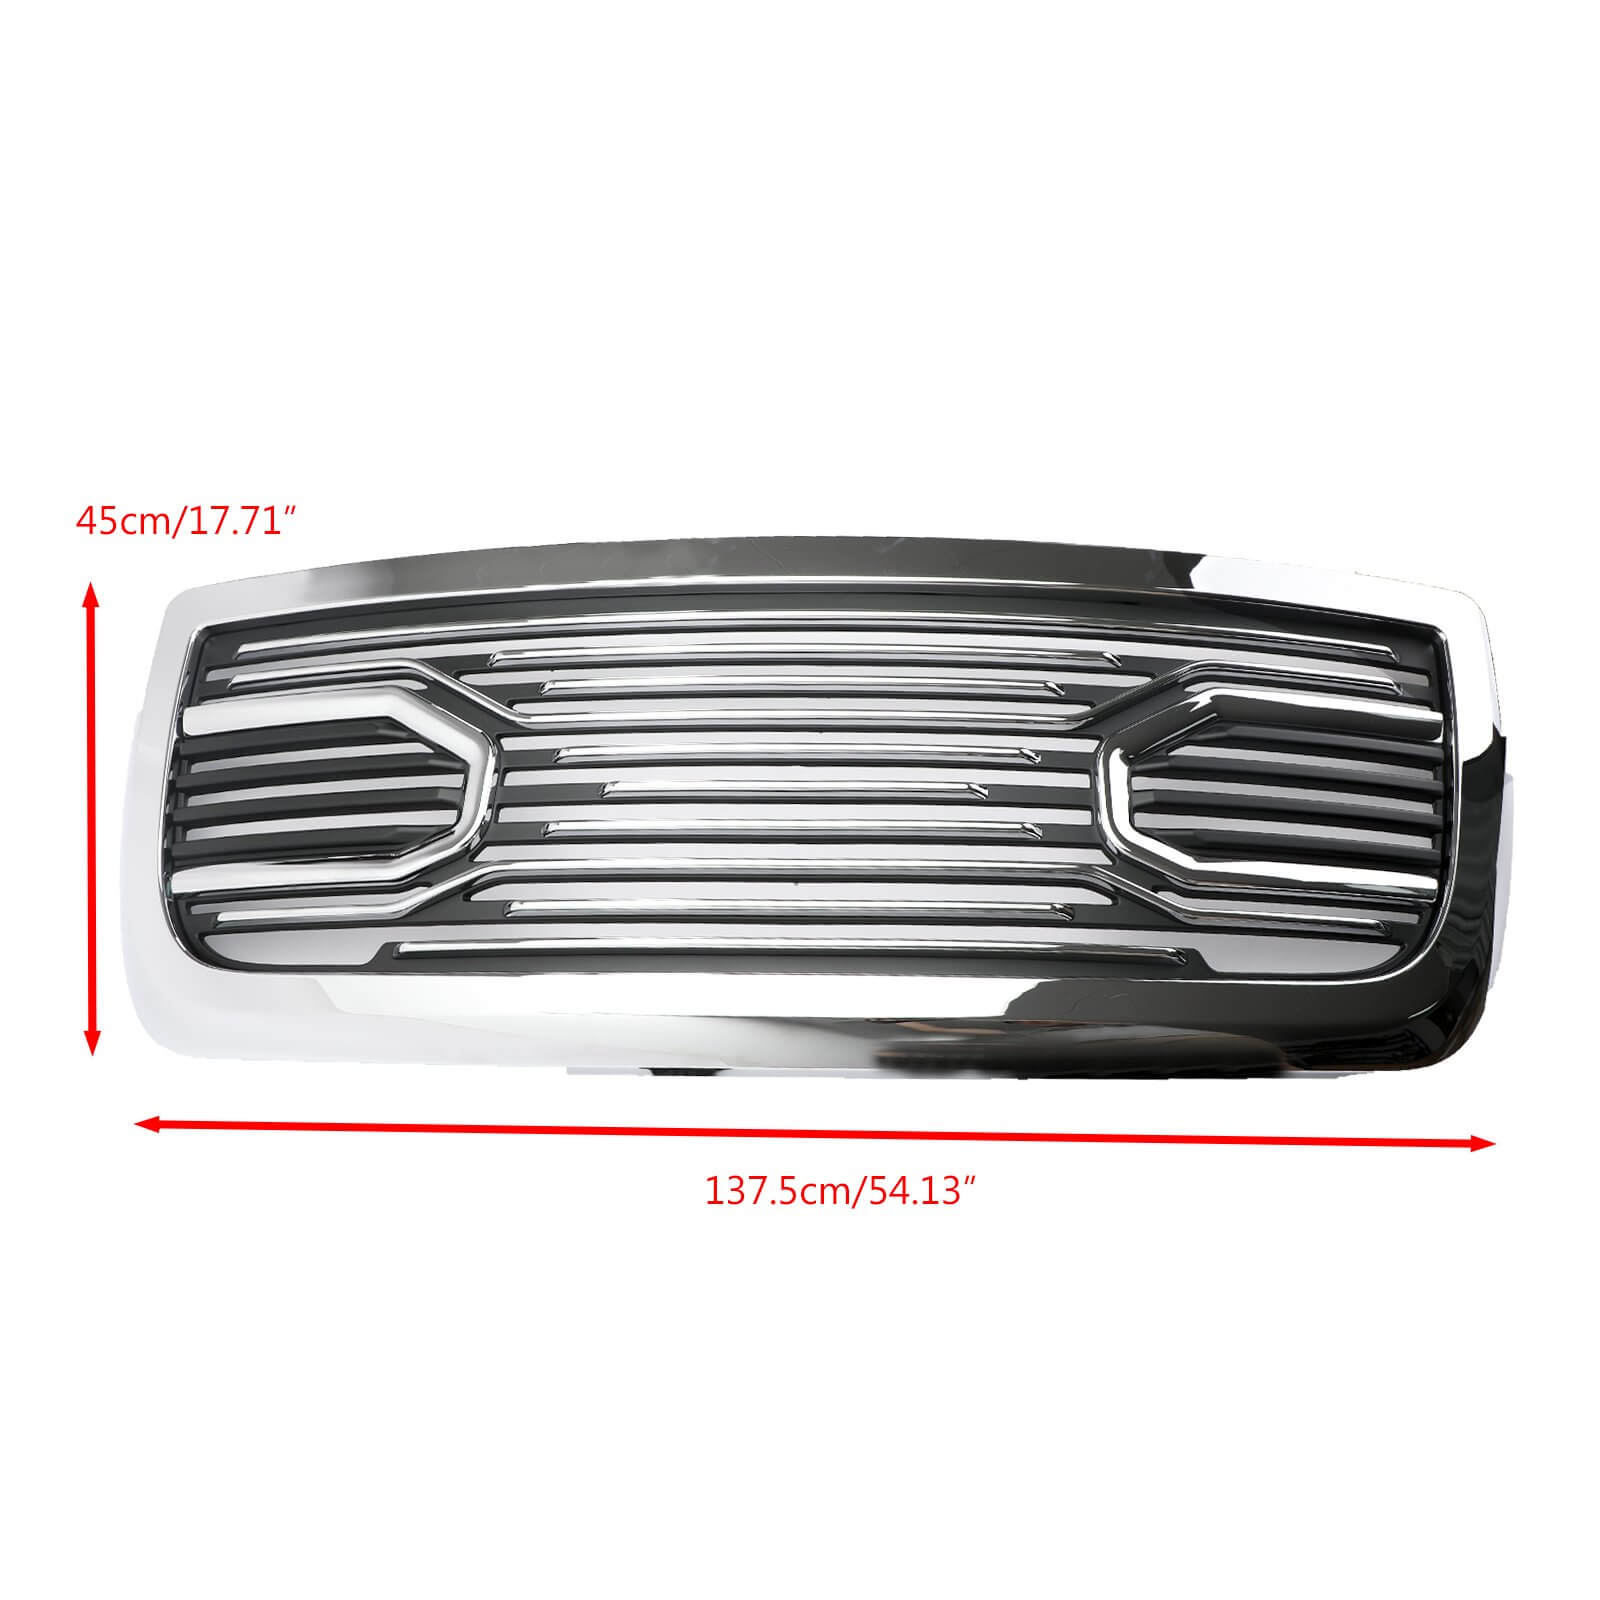 2010-2018 Ram 2500/3500 Big Horn Chrome Packaged Grille+Replacement Shell Generic